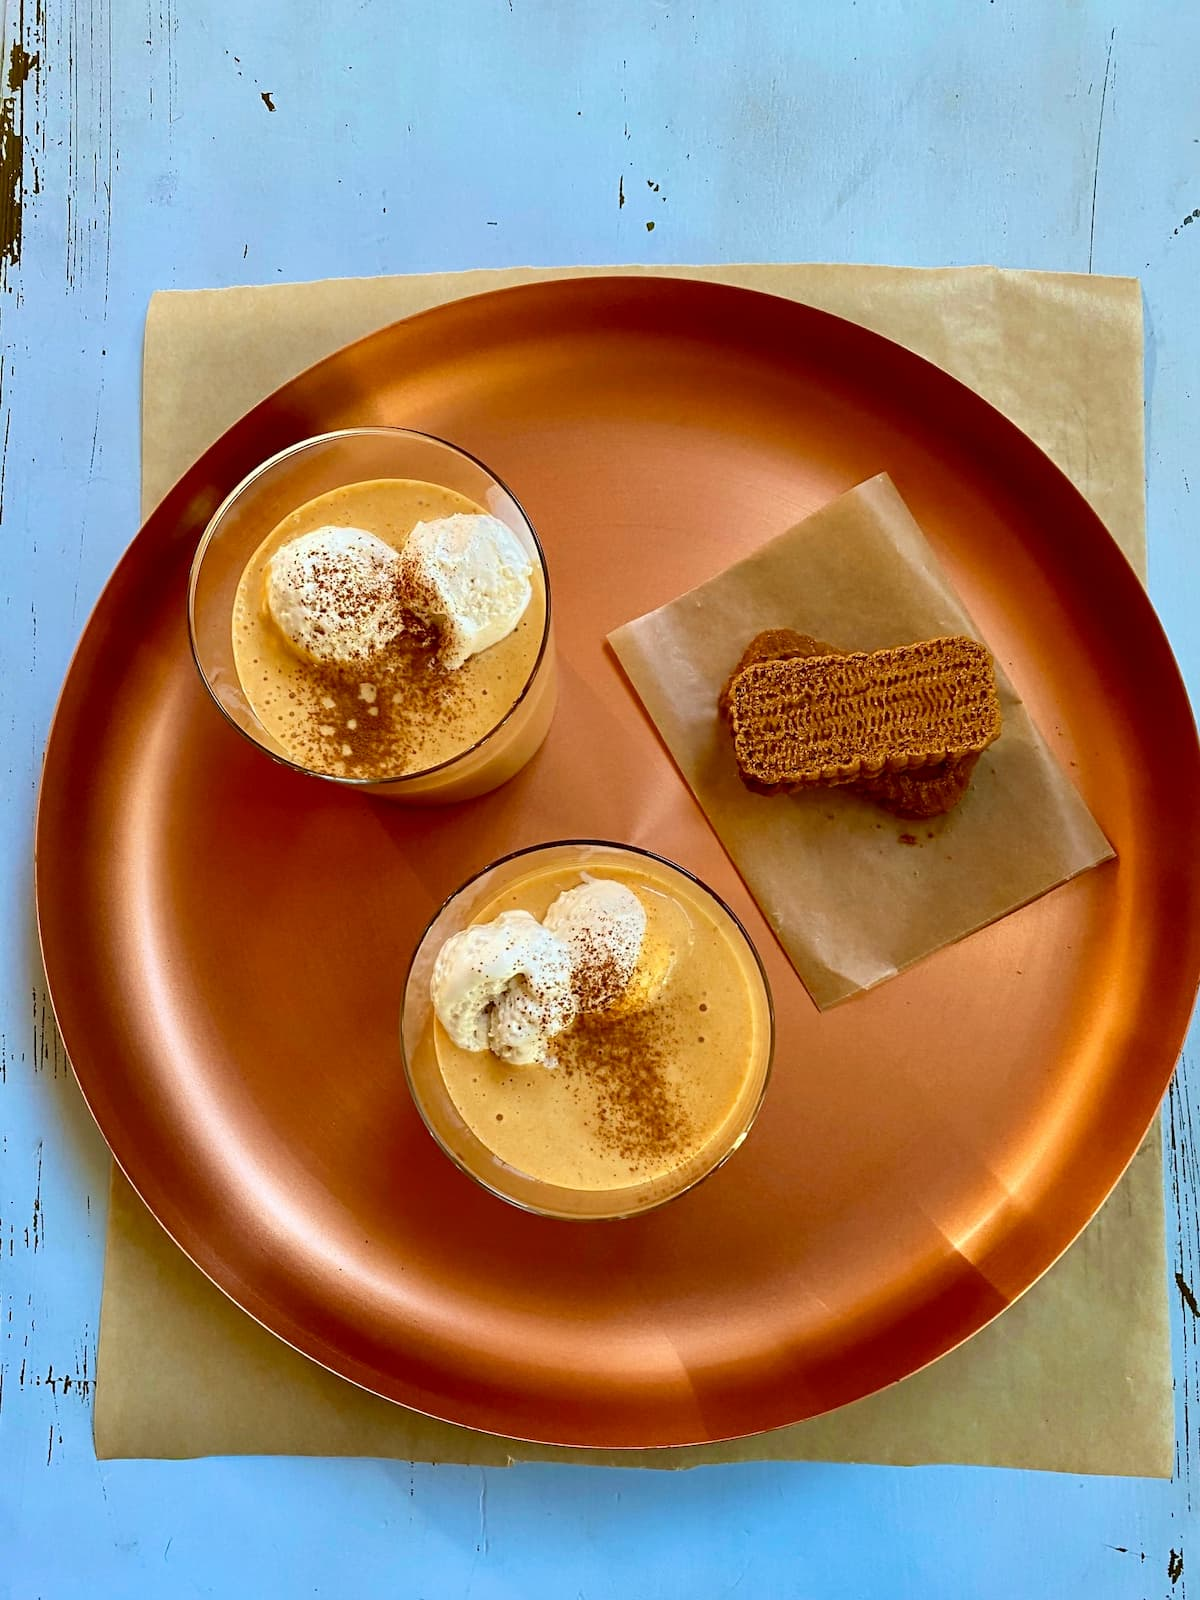 a copper tray with two orange milkshakes and two graham crackers on a blue table.